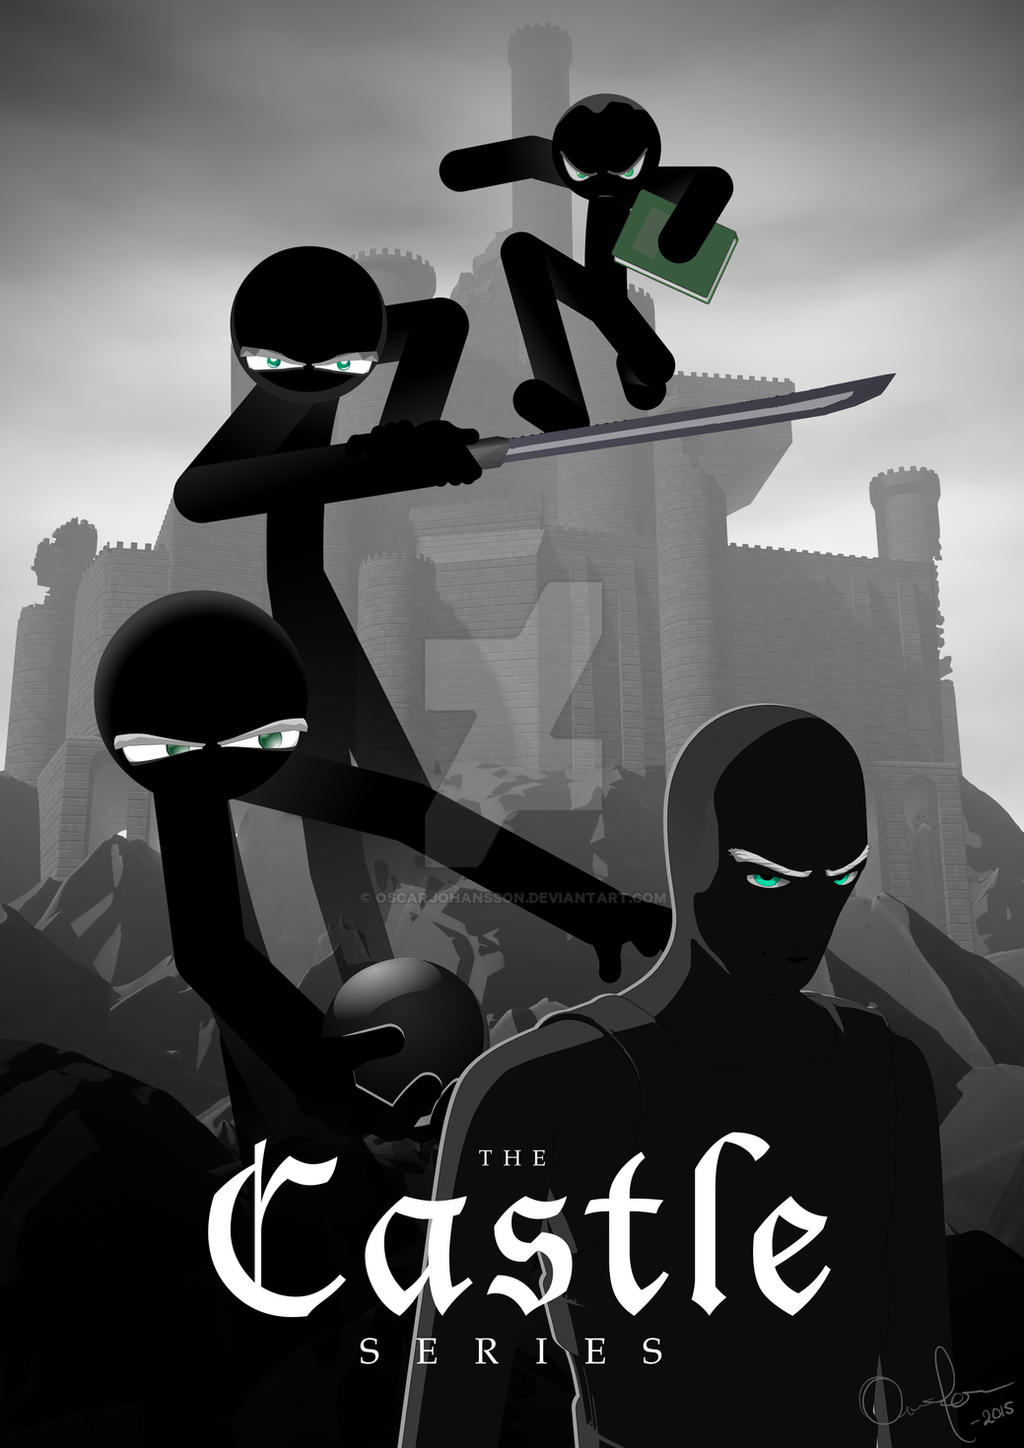 Castle Series Poster by OscarJohansson